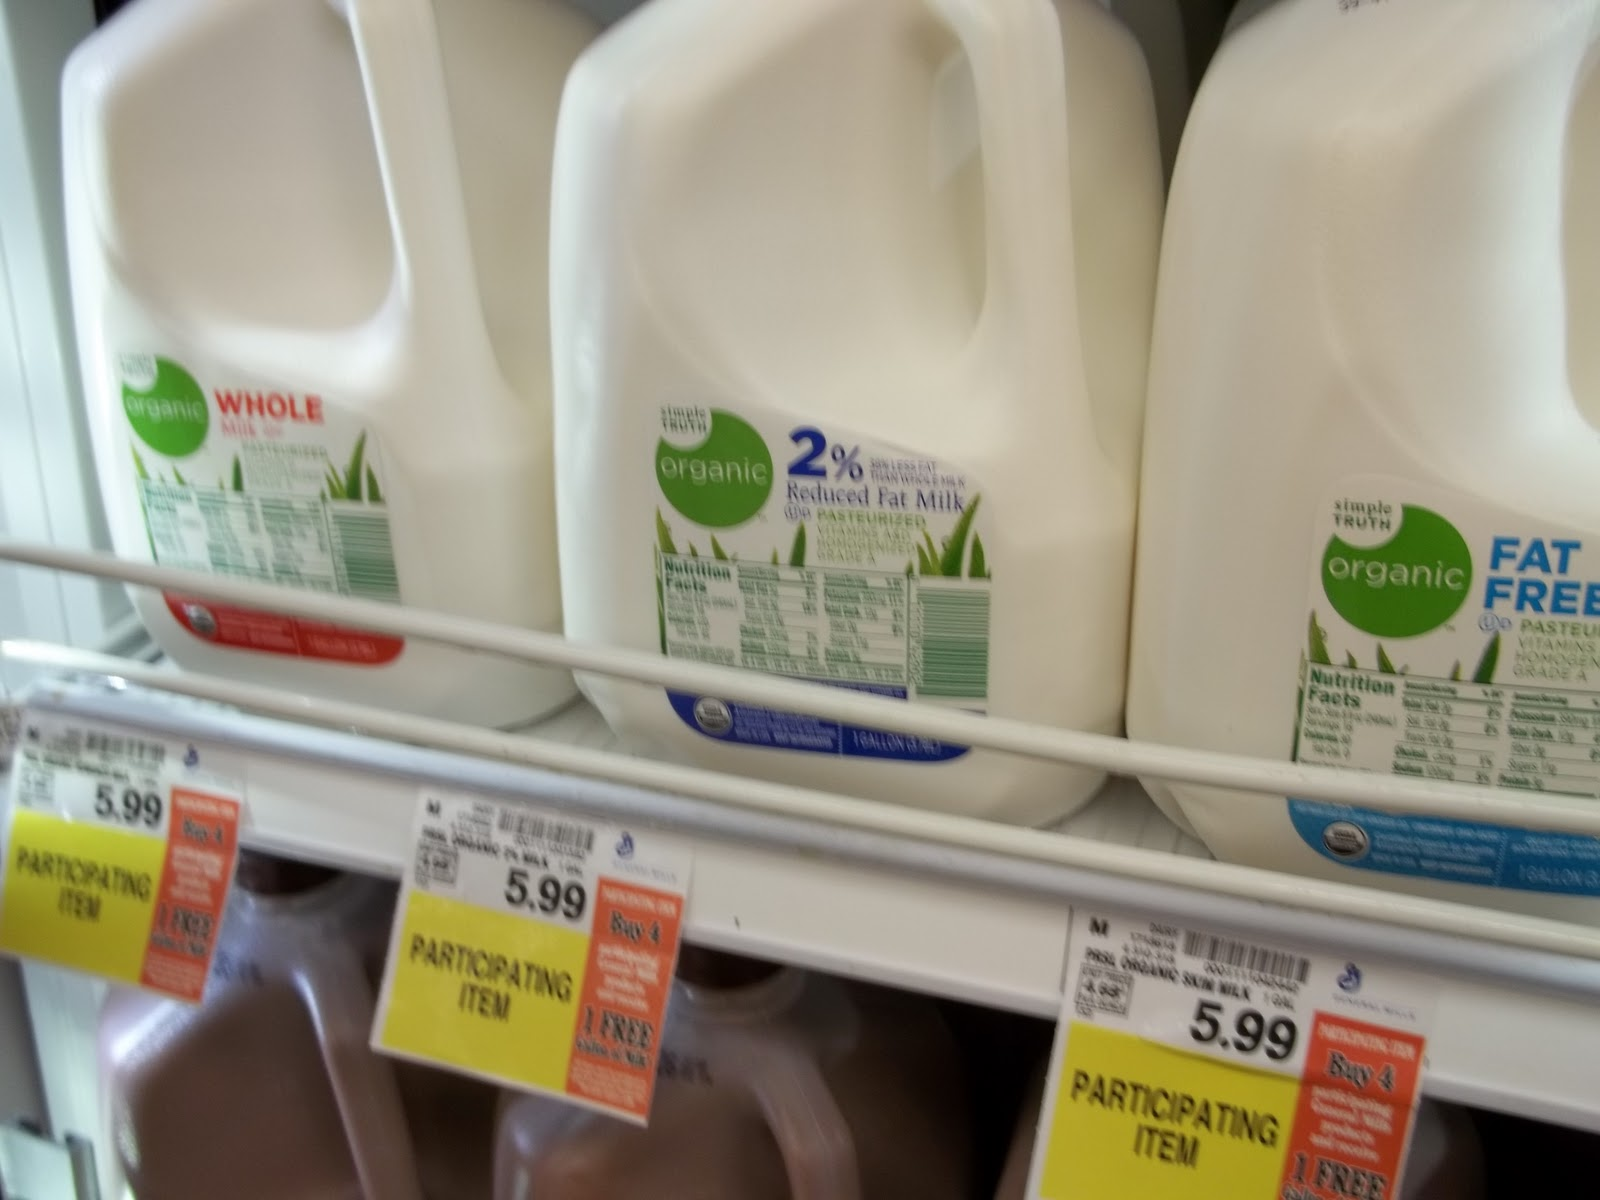 Kroger Milk http://richmansfood.blogspot.com/2011/11/pay-attention-padawan.html